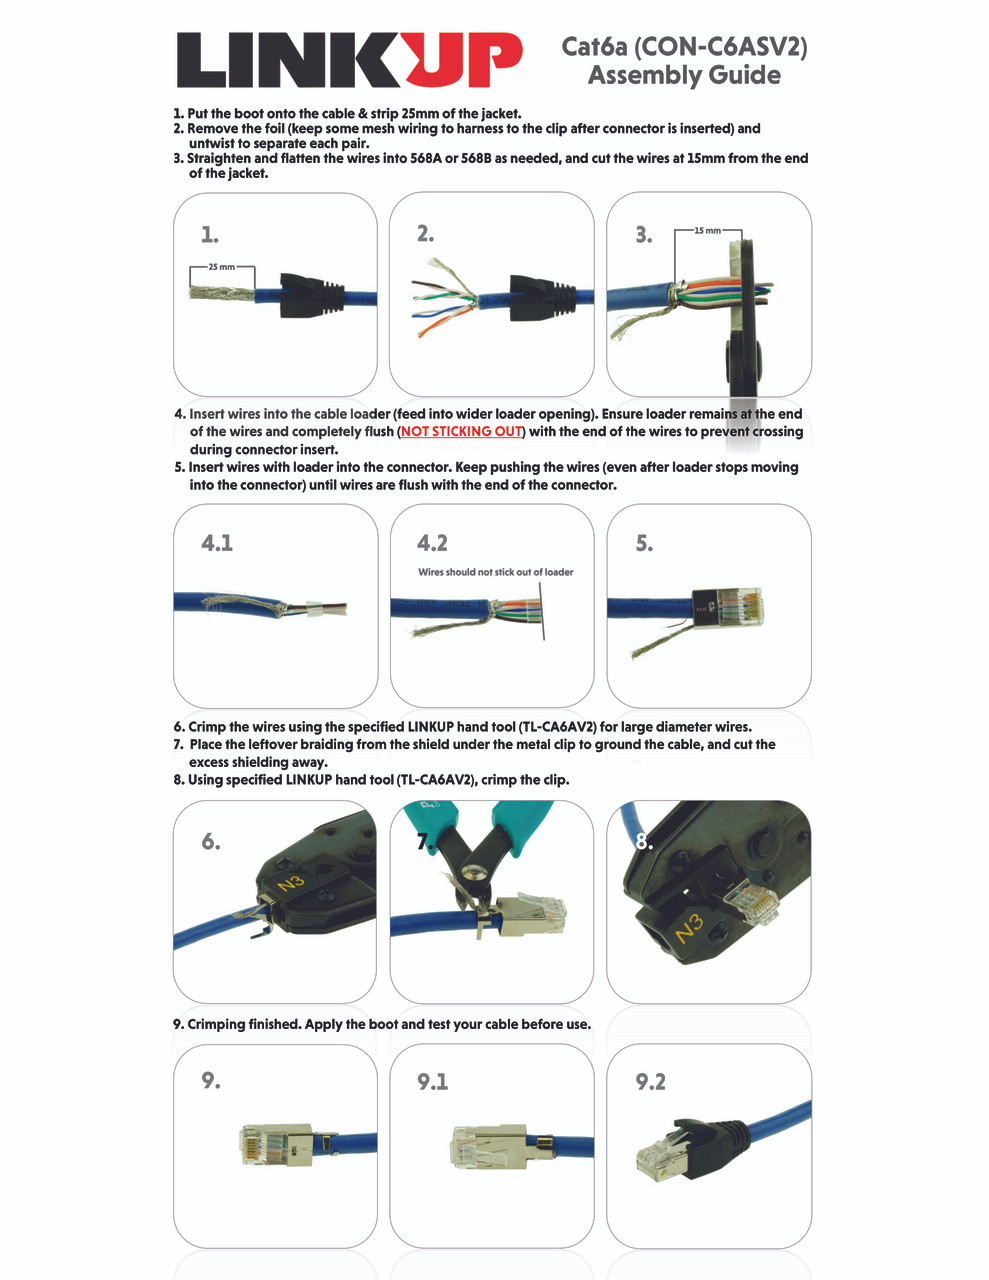 hight resolution of  linkup rj45 connectors cat6a ethernet shielded modular plugs for large diameter wires 22awg termination